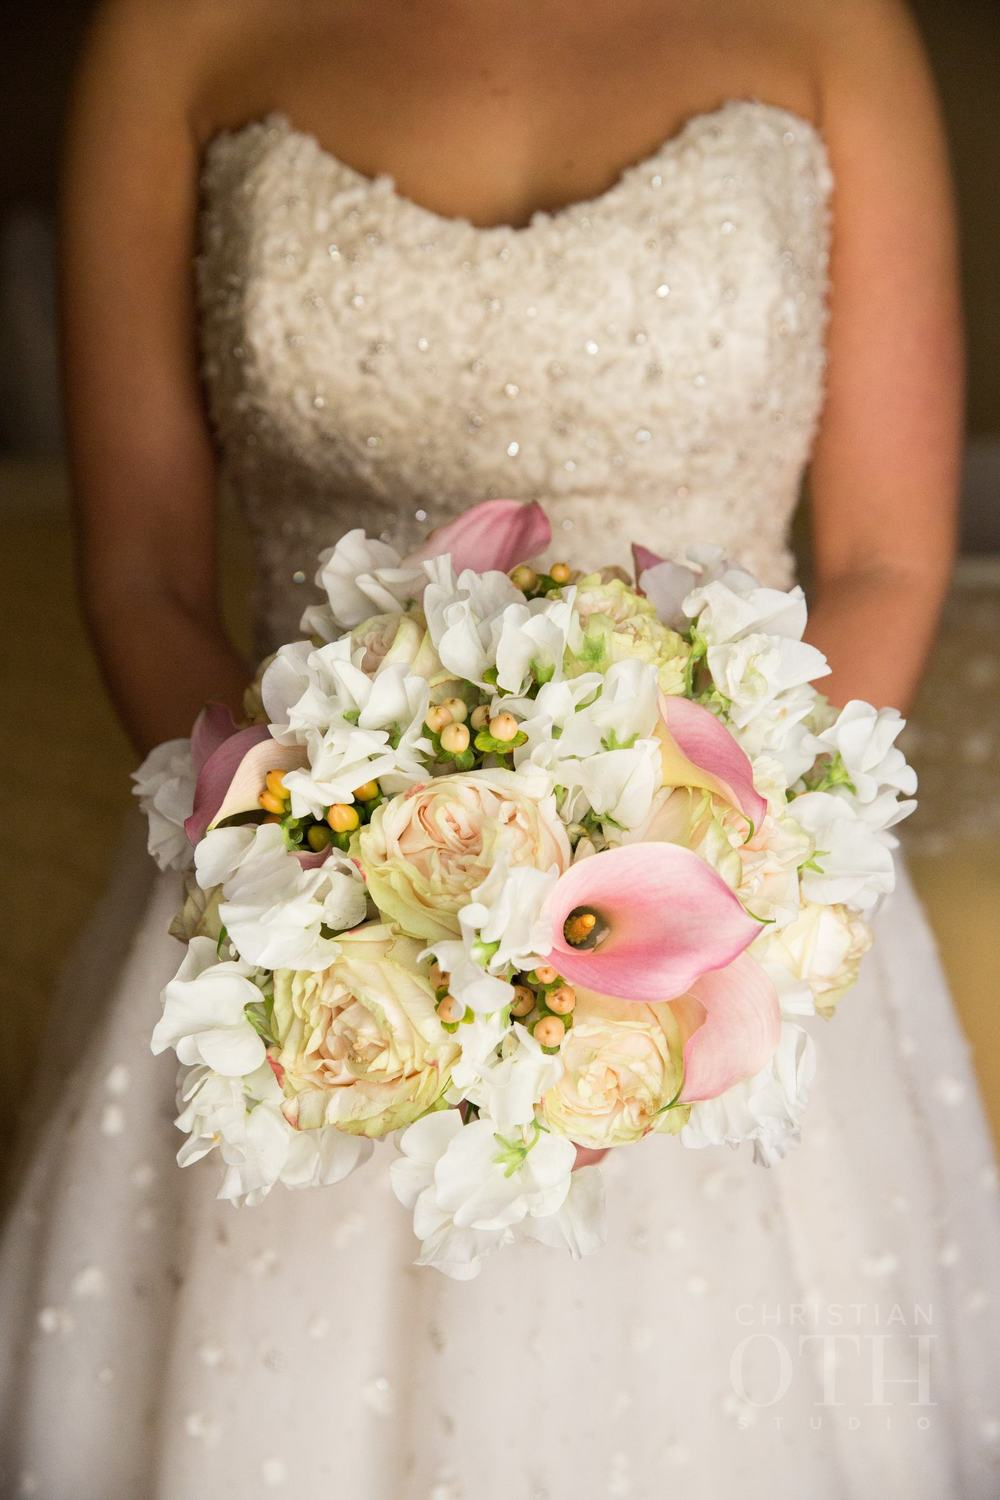 Bouquet White with Pinks